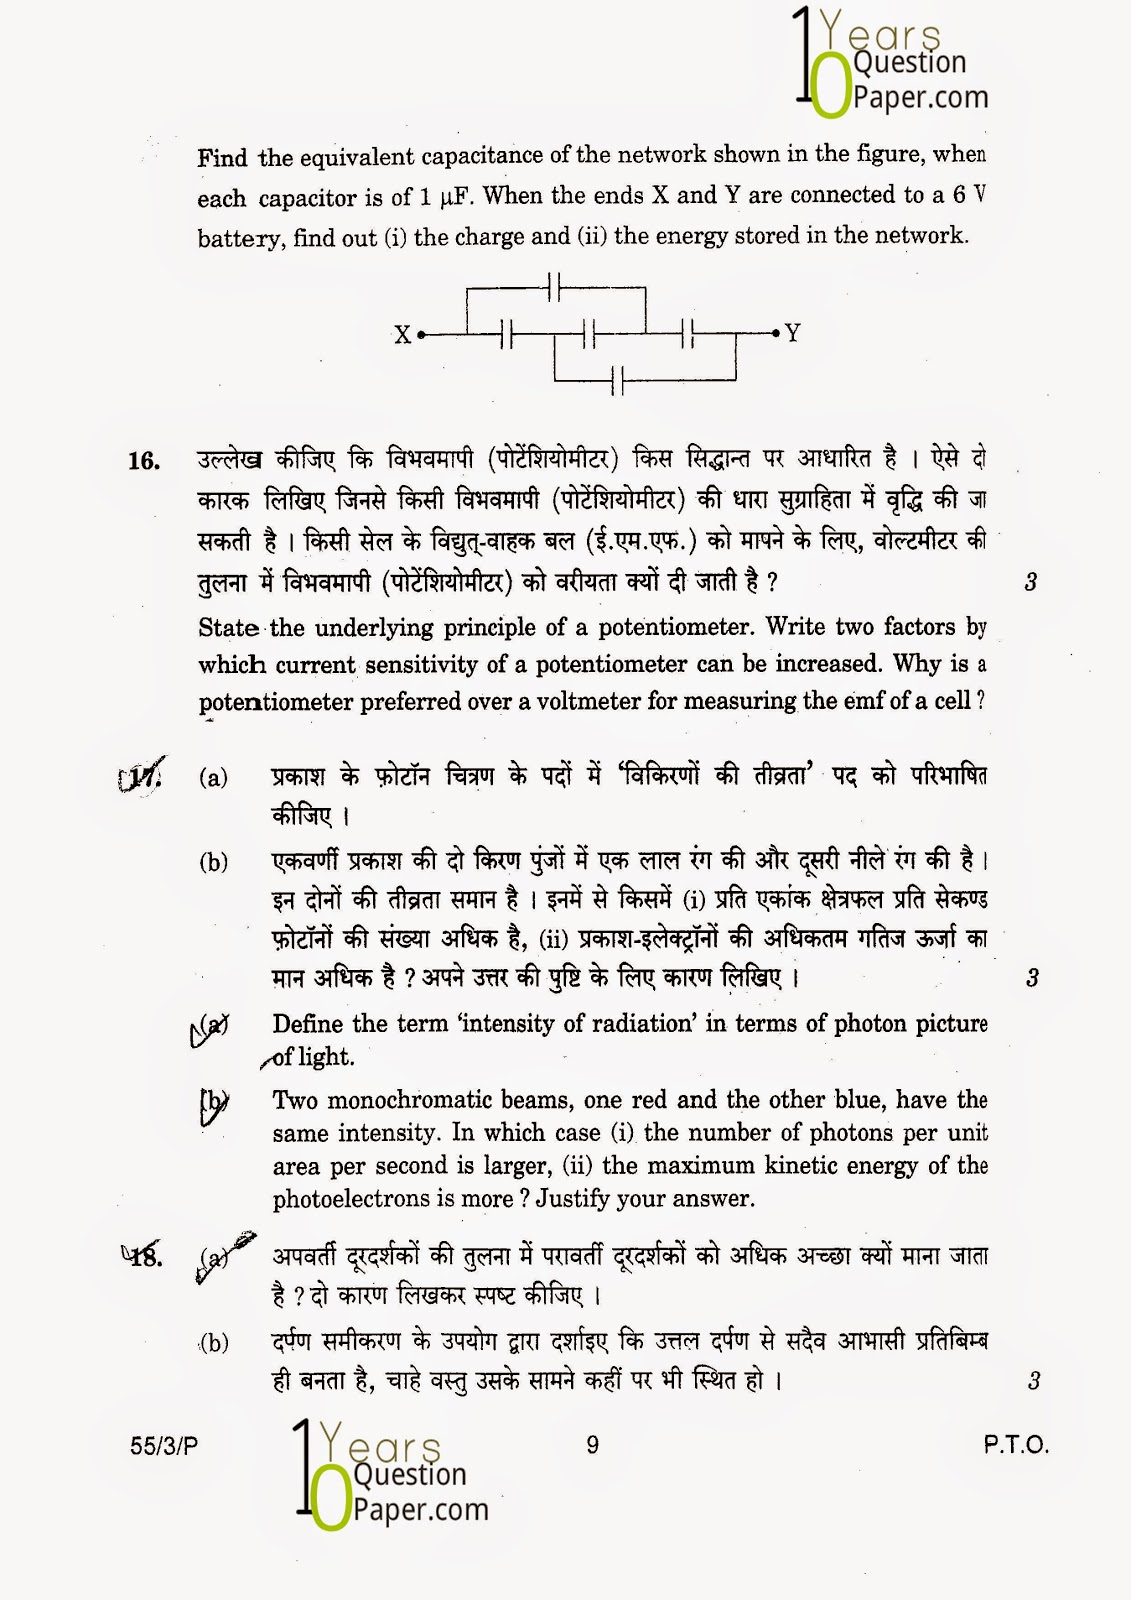 cbse class 12th 2015 Physics question paper